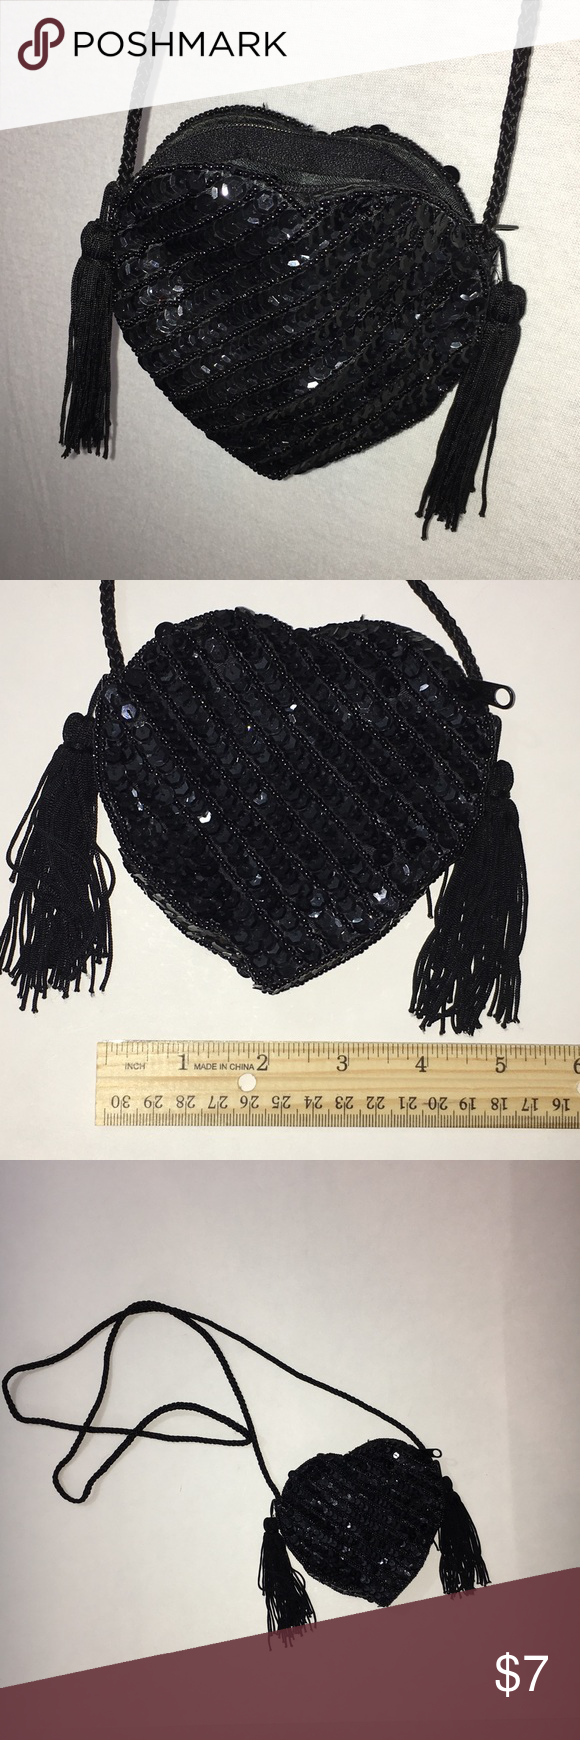 """Black sequined heart tassel crossbody handbag Black sequined heart shaped crossbody Handbag Purse with tassels. Excellent condition. Zipper closure, satin lined interior. Fully sequined on all sides. Perfect for a night out or Valentine's Day dinner. Measures approximately 4.5"""" length, 4.5"""" height, .75"""" width. Fabric cord strap drop measures approximately 21"""" length. Smoke free home. (A7) Bags Crossbody Bags"""